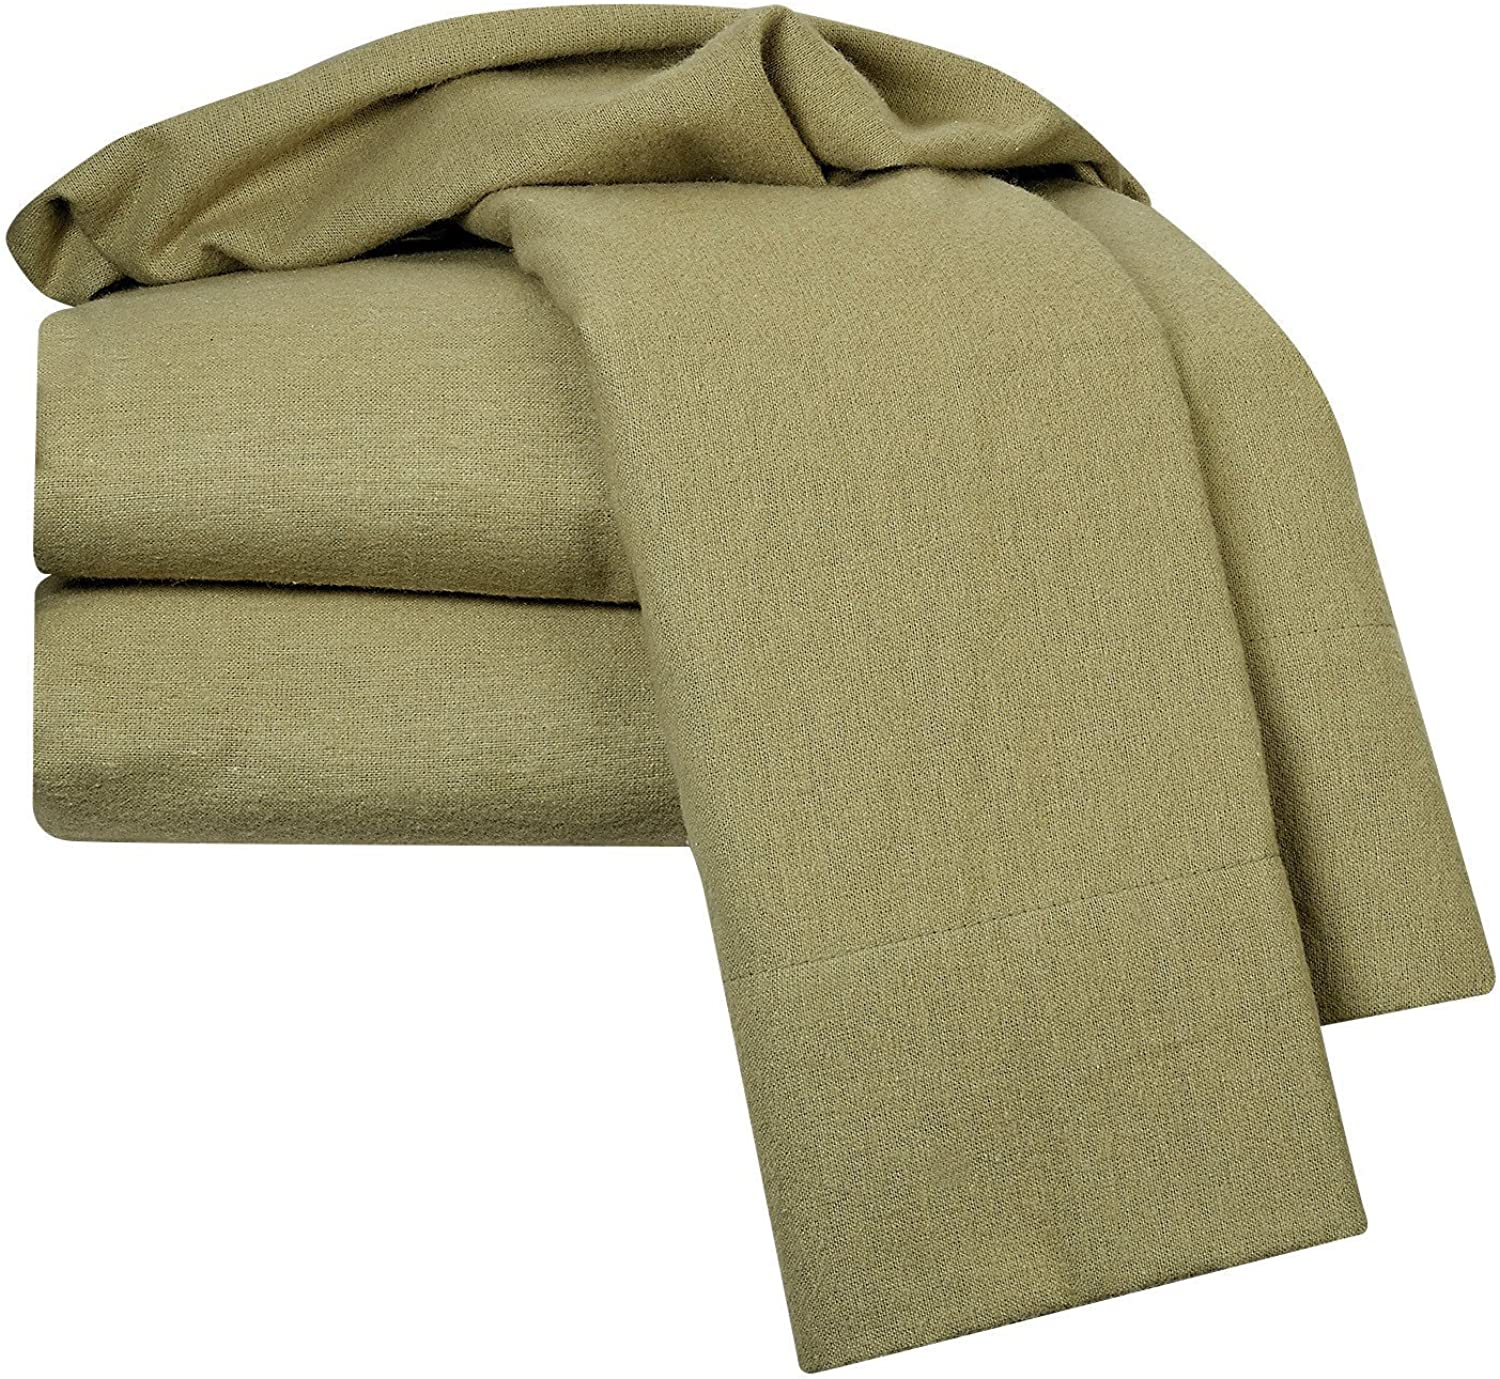 Nestl Bedding Heavyweight 100% Cotton Flannel Sheet Set, King - Sage Green - Luxurious Soft Hypoallergenic and Very Silky Bedding Fabric Enjoy A Comfortable Sleeping Experience